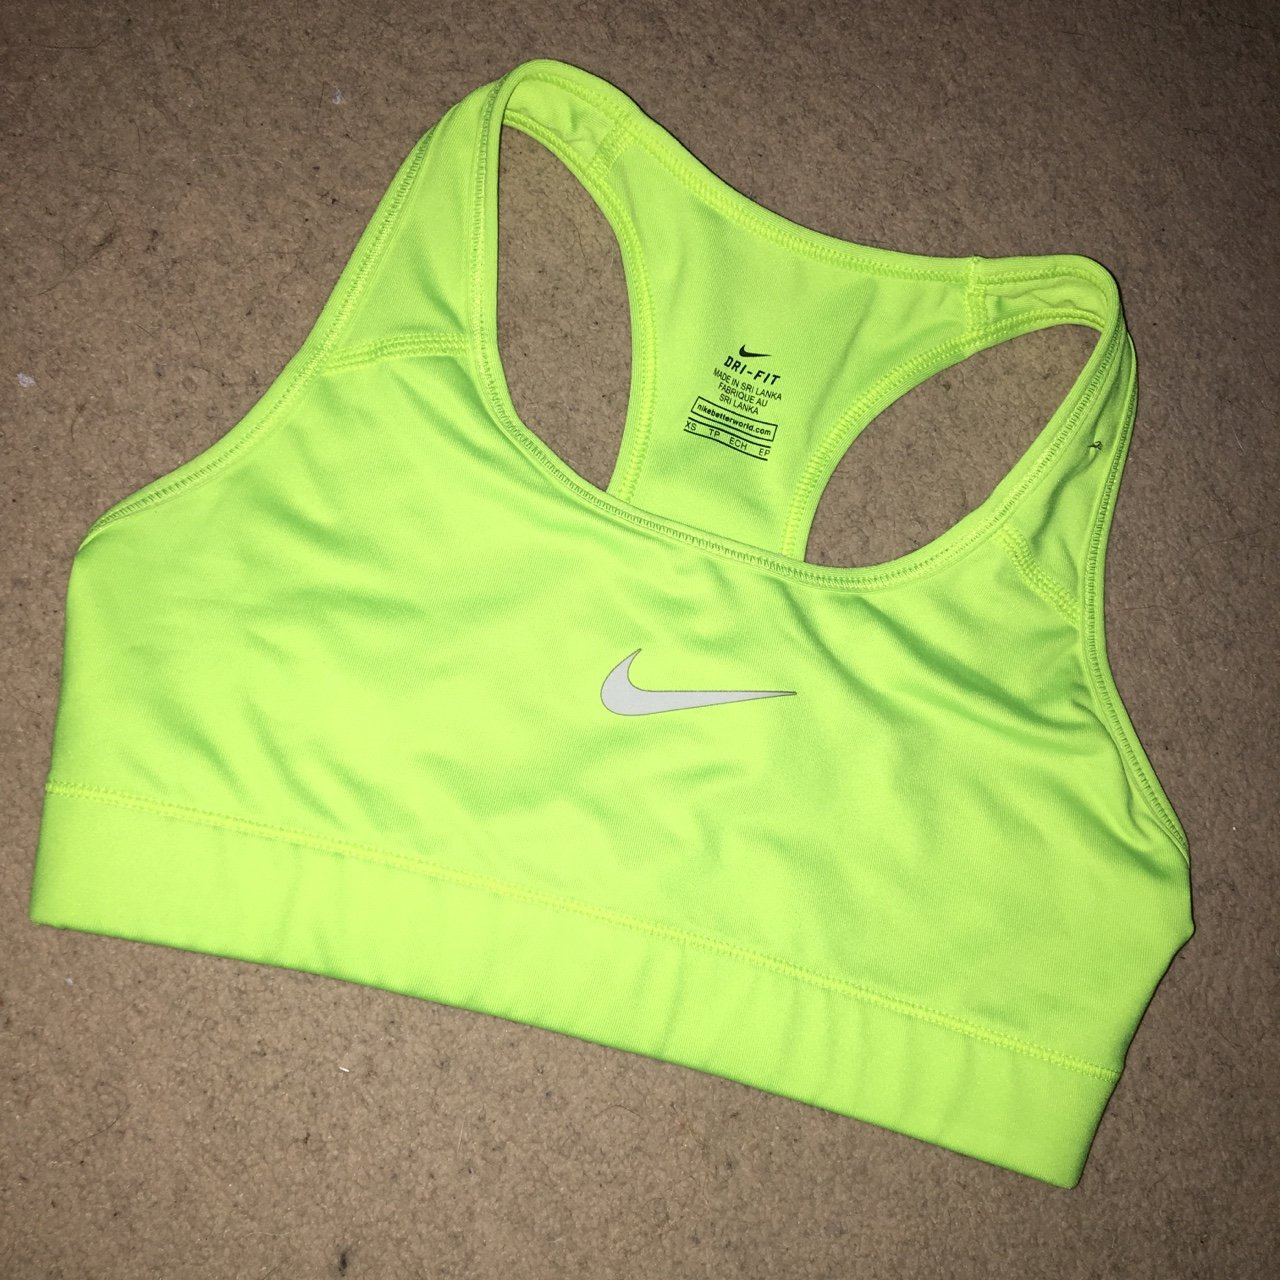 3435d70b9f Nike sports bra - worn a few times but in perfect condition - Depop